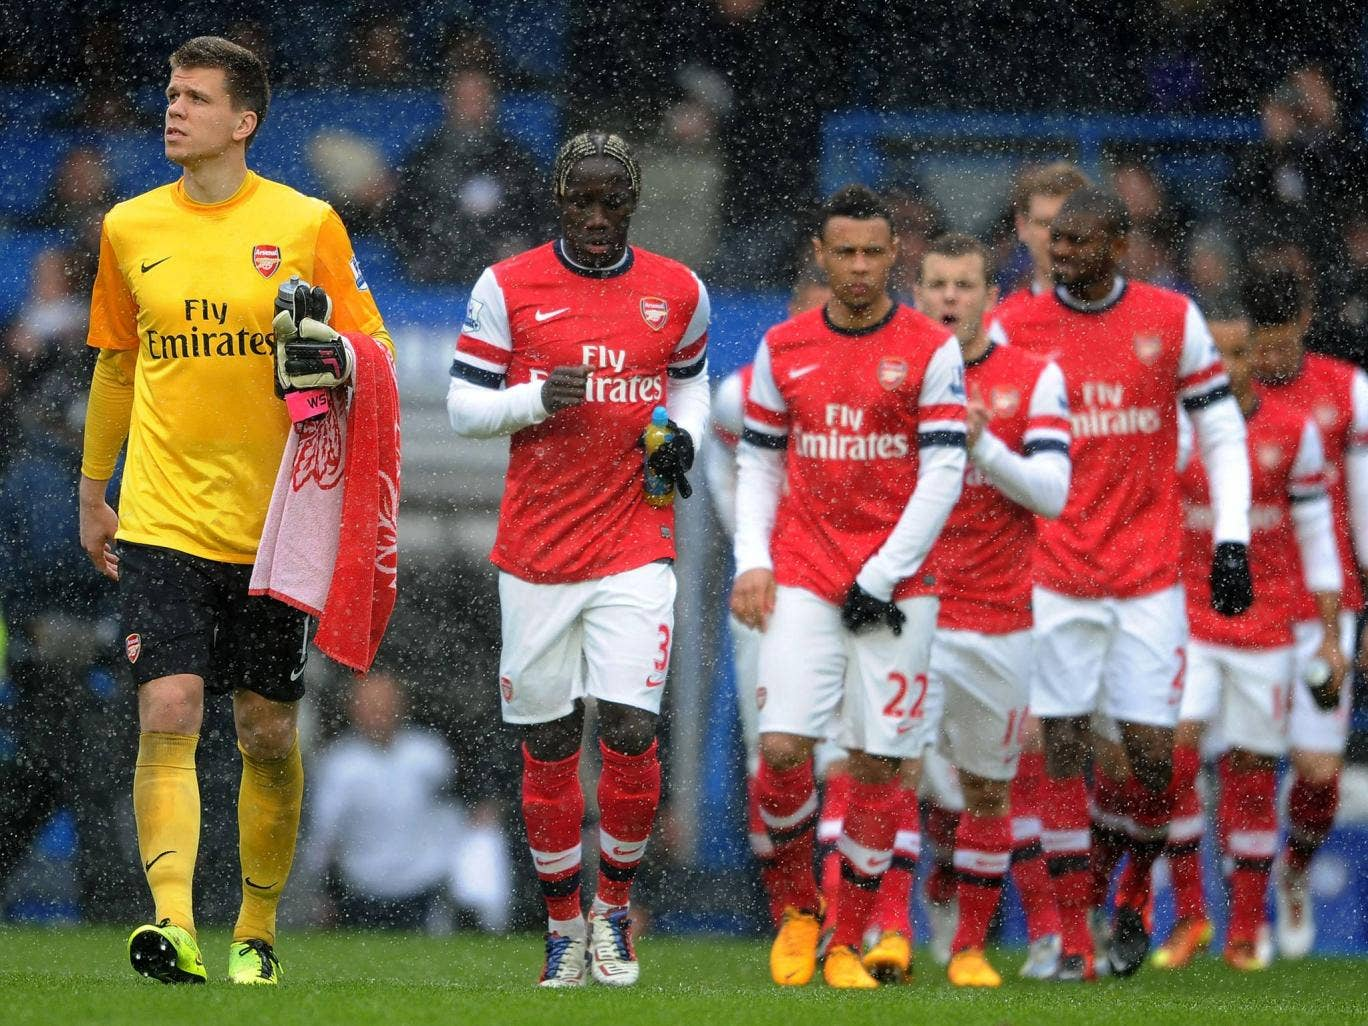 Arsenal walk out onto the pitch against Chelsea